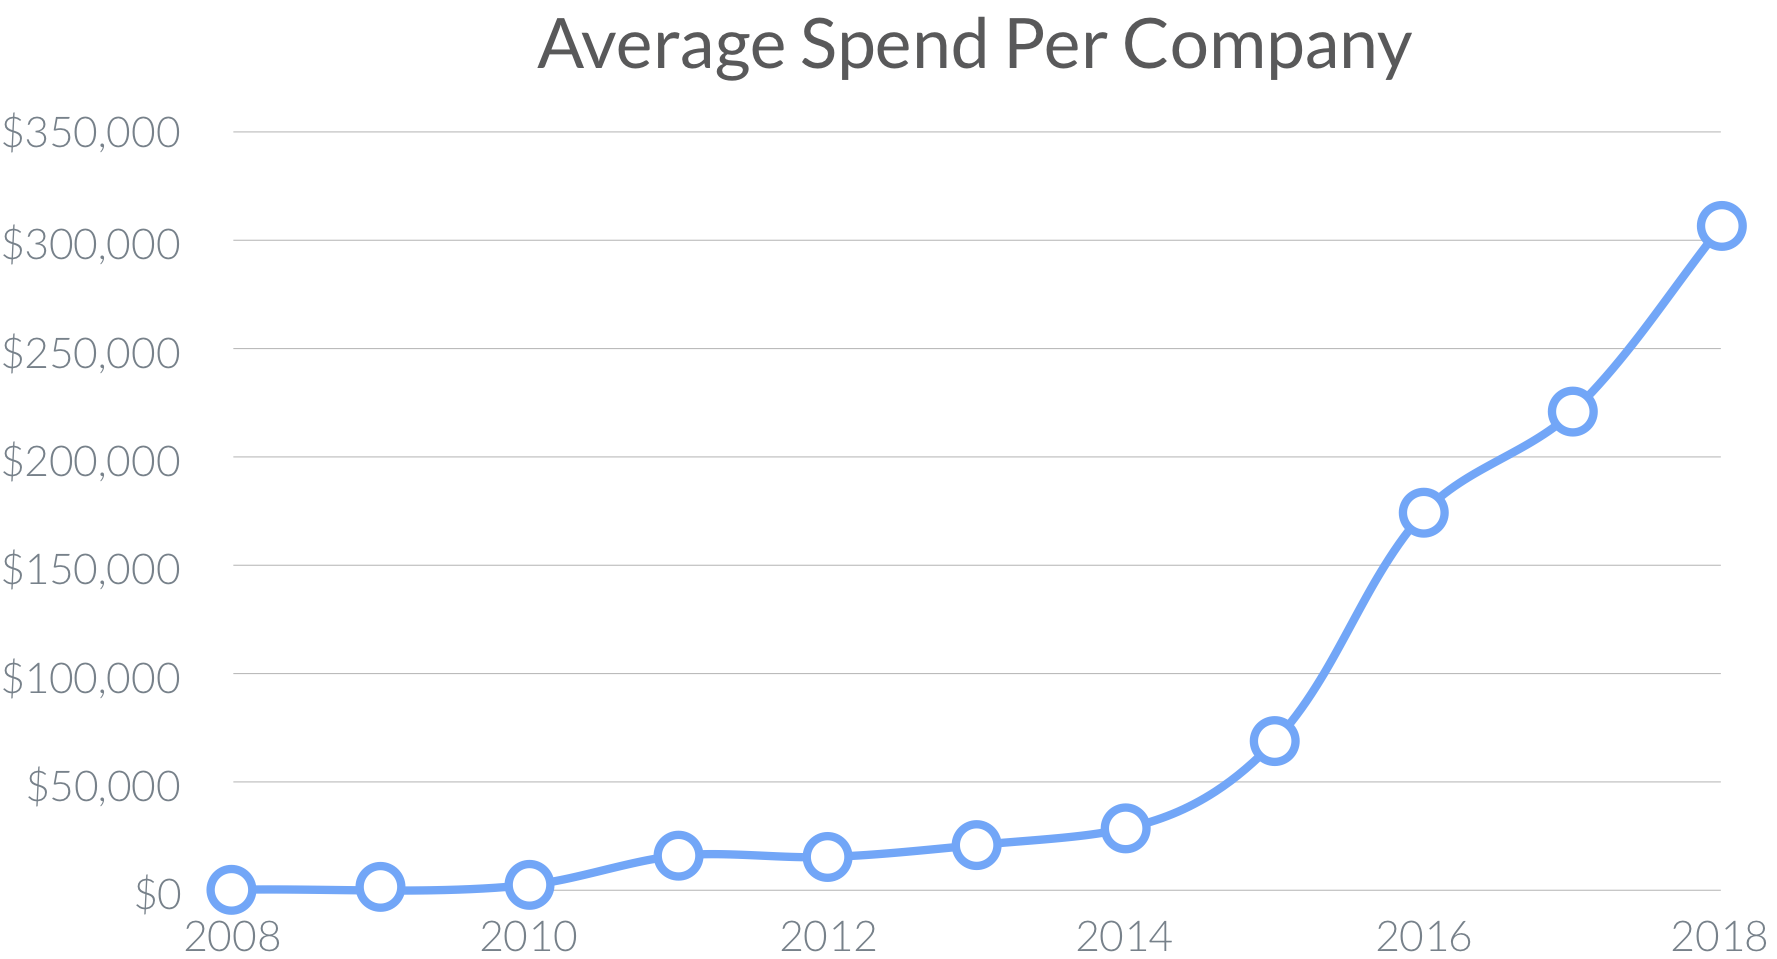 SaaS Trends Average Spend per Company